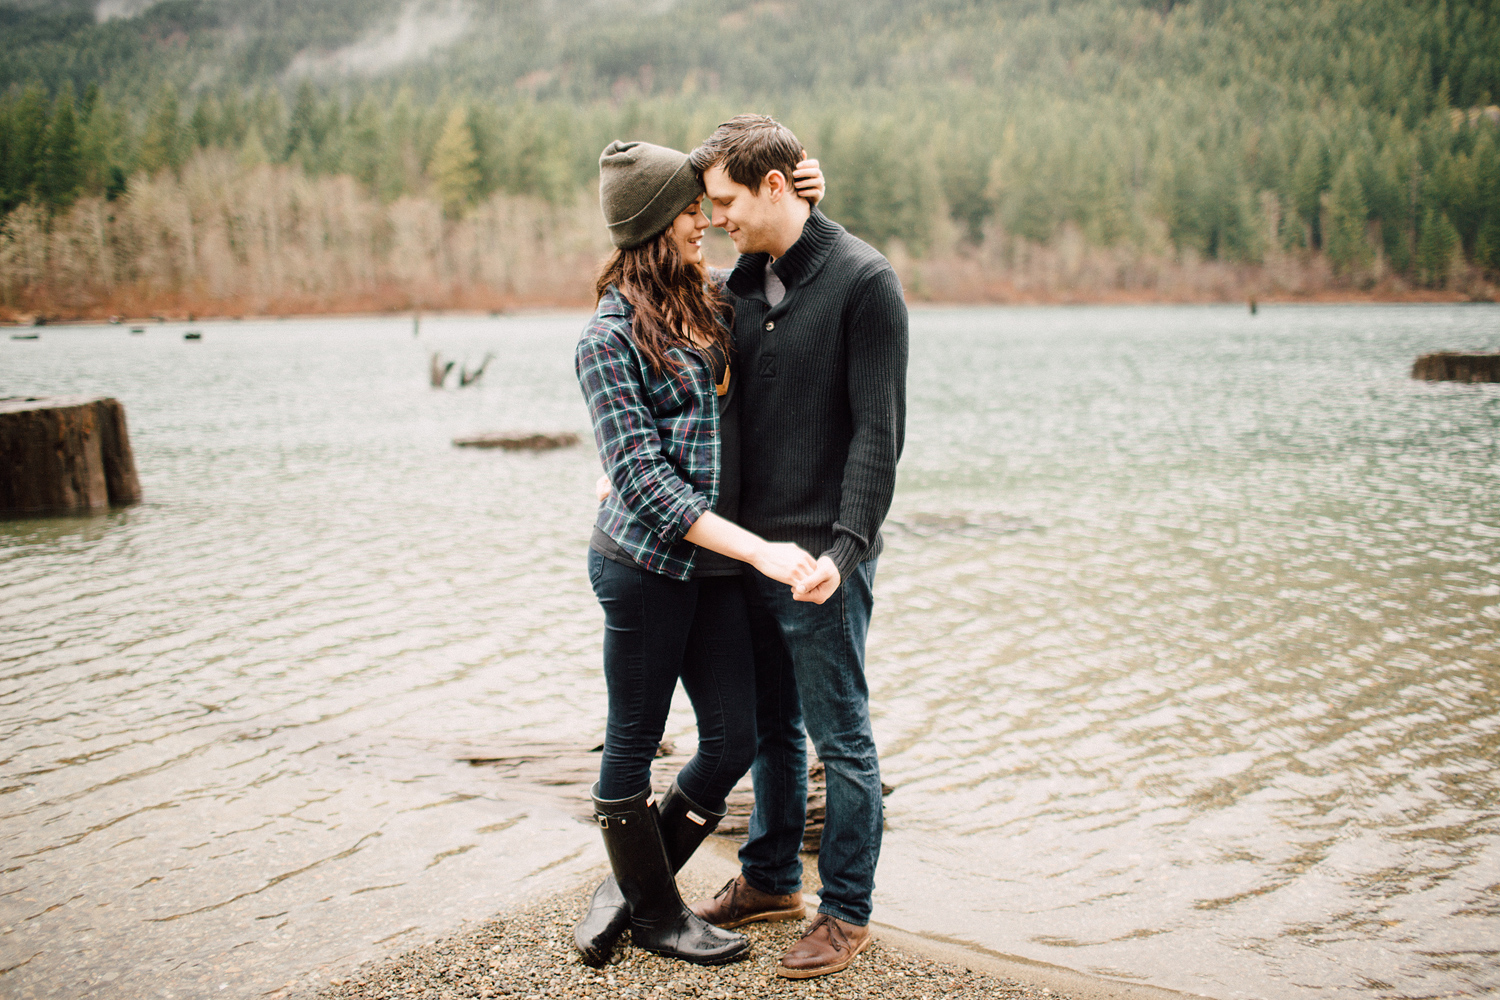 ryan-flynn-photography-rattlesnake-lake-engagement-film-blog-0007.JPG